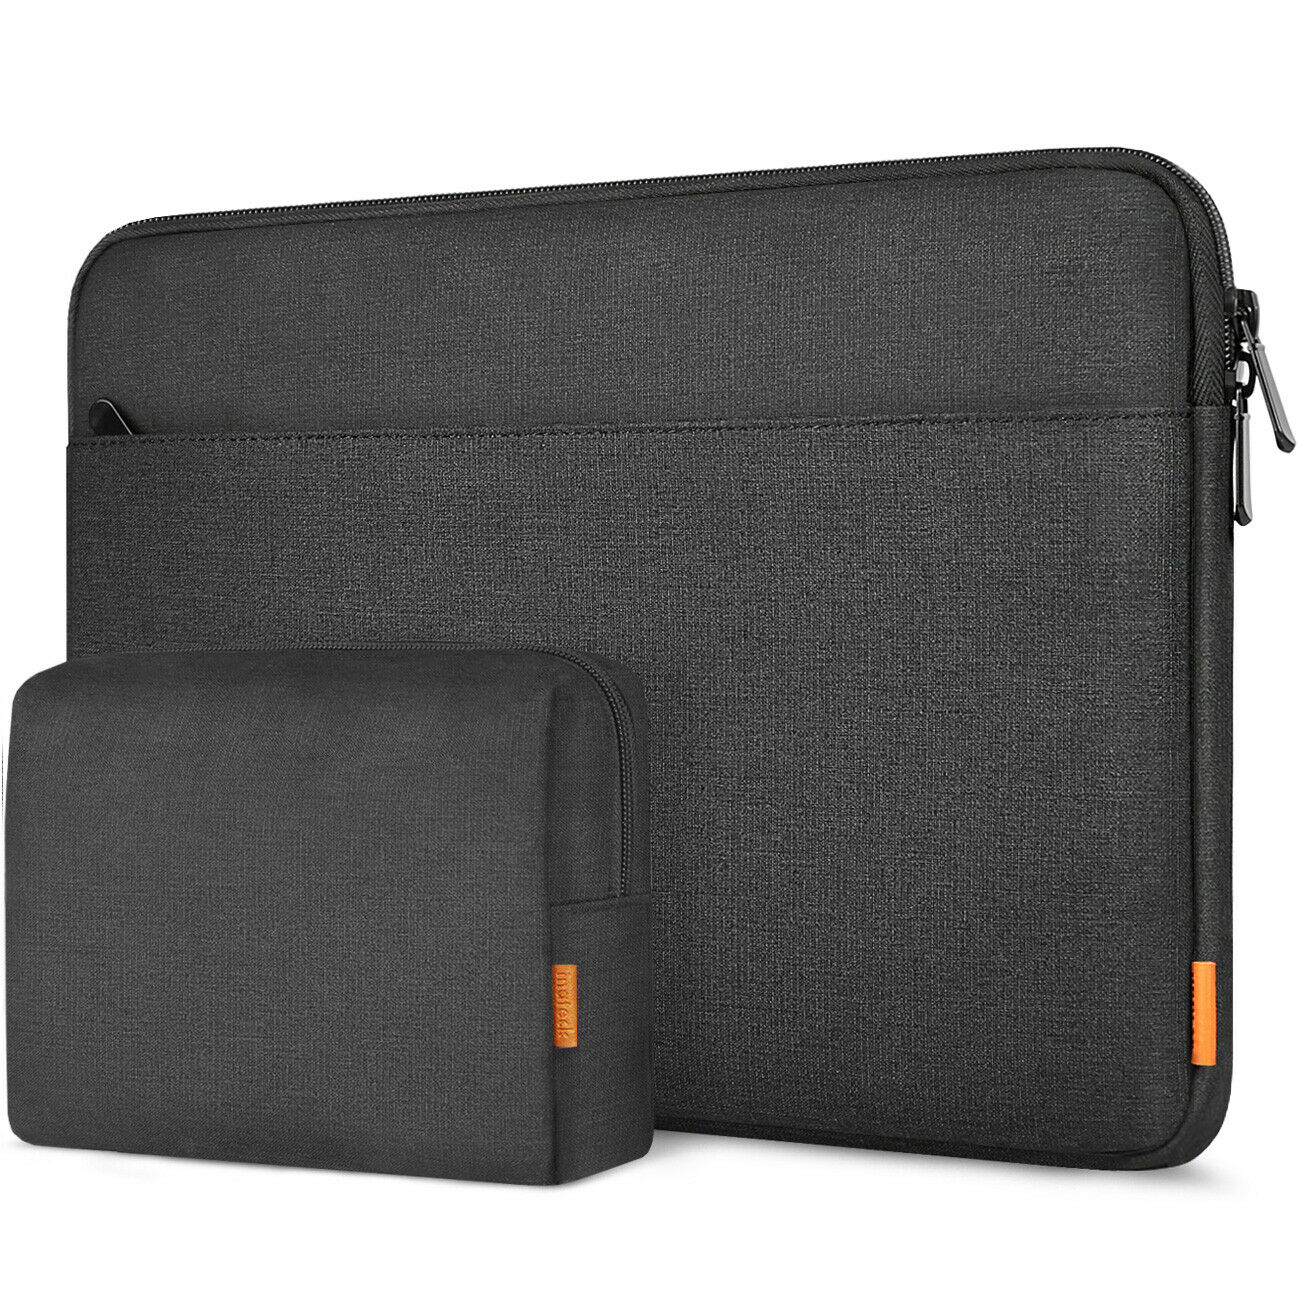 15-15.6 Inch Laptop Sleeve Case Bag For 15 15.6 Laptops with Accessory Pouch